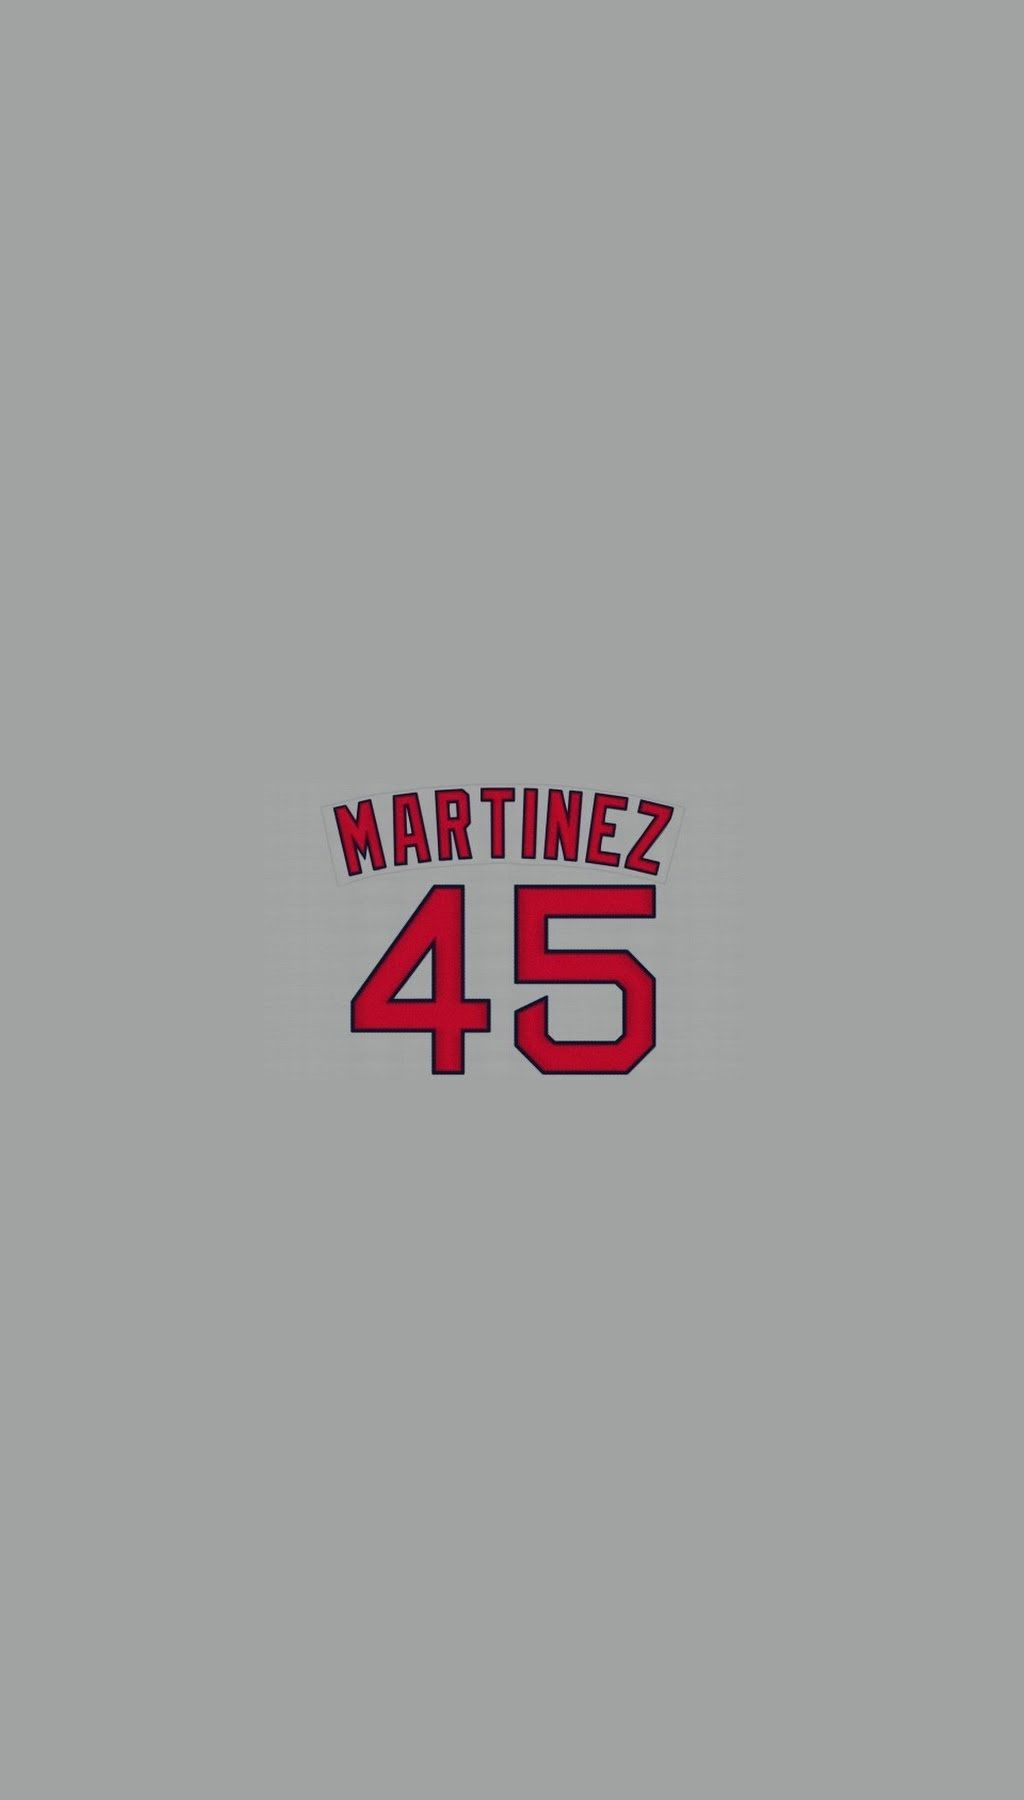 Pin by Archie Douglas on Red Sox in 2020 | Red sox, Jersey ...